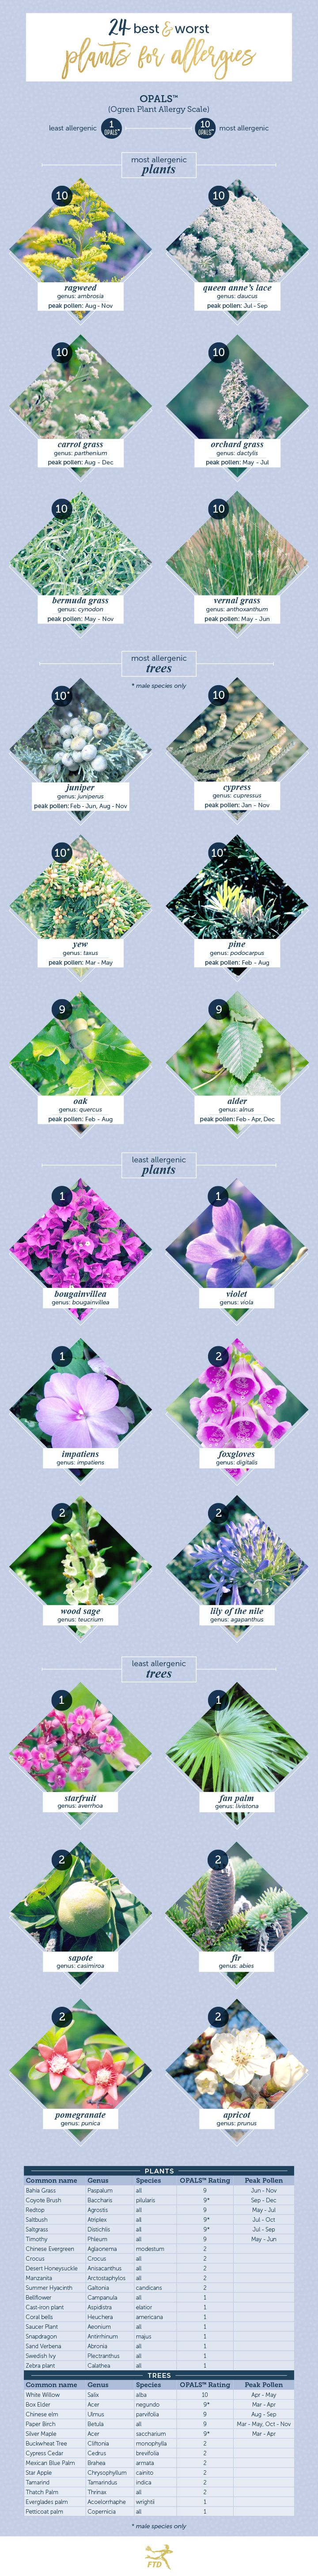 Blue apron allergies - 24 Best And Worst Plants For Allergies Check Out At Www Organic4greenlivings Com